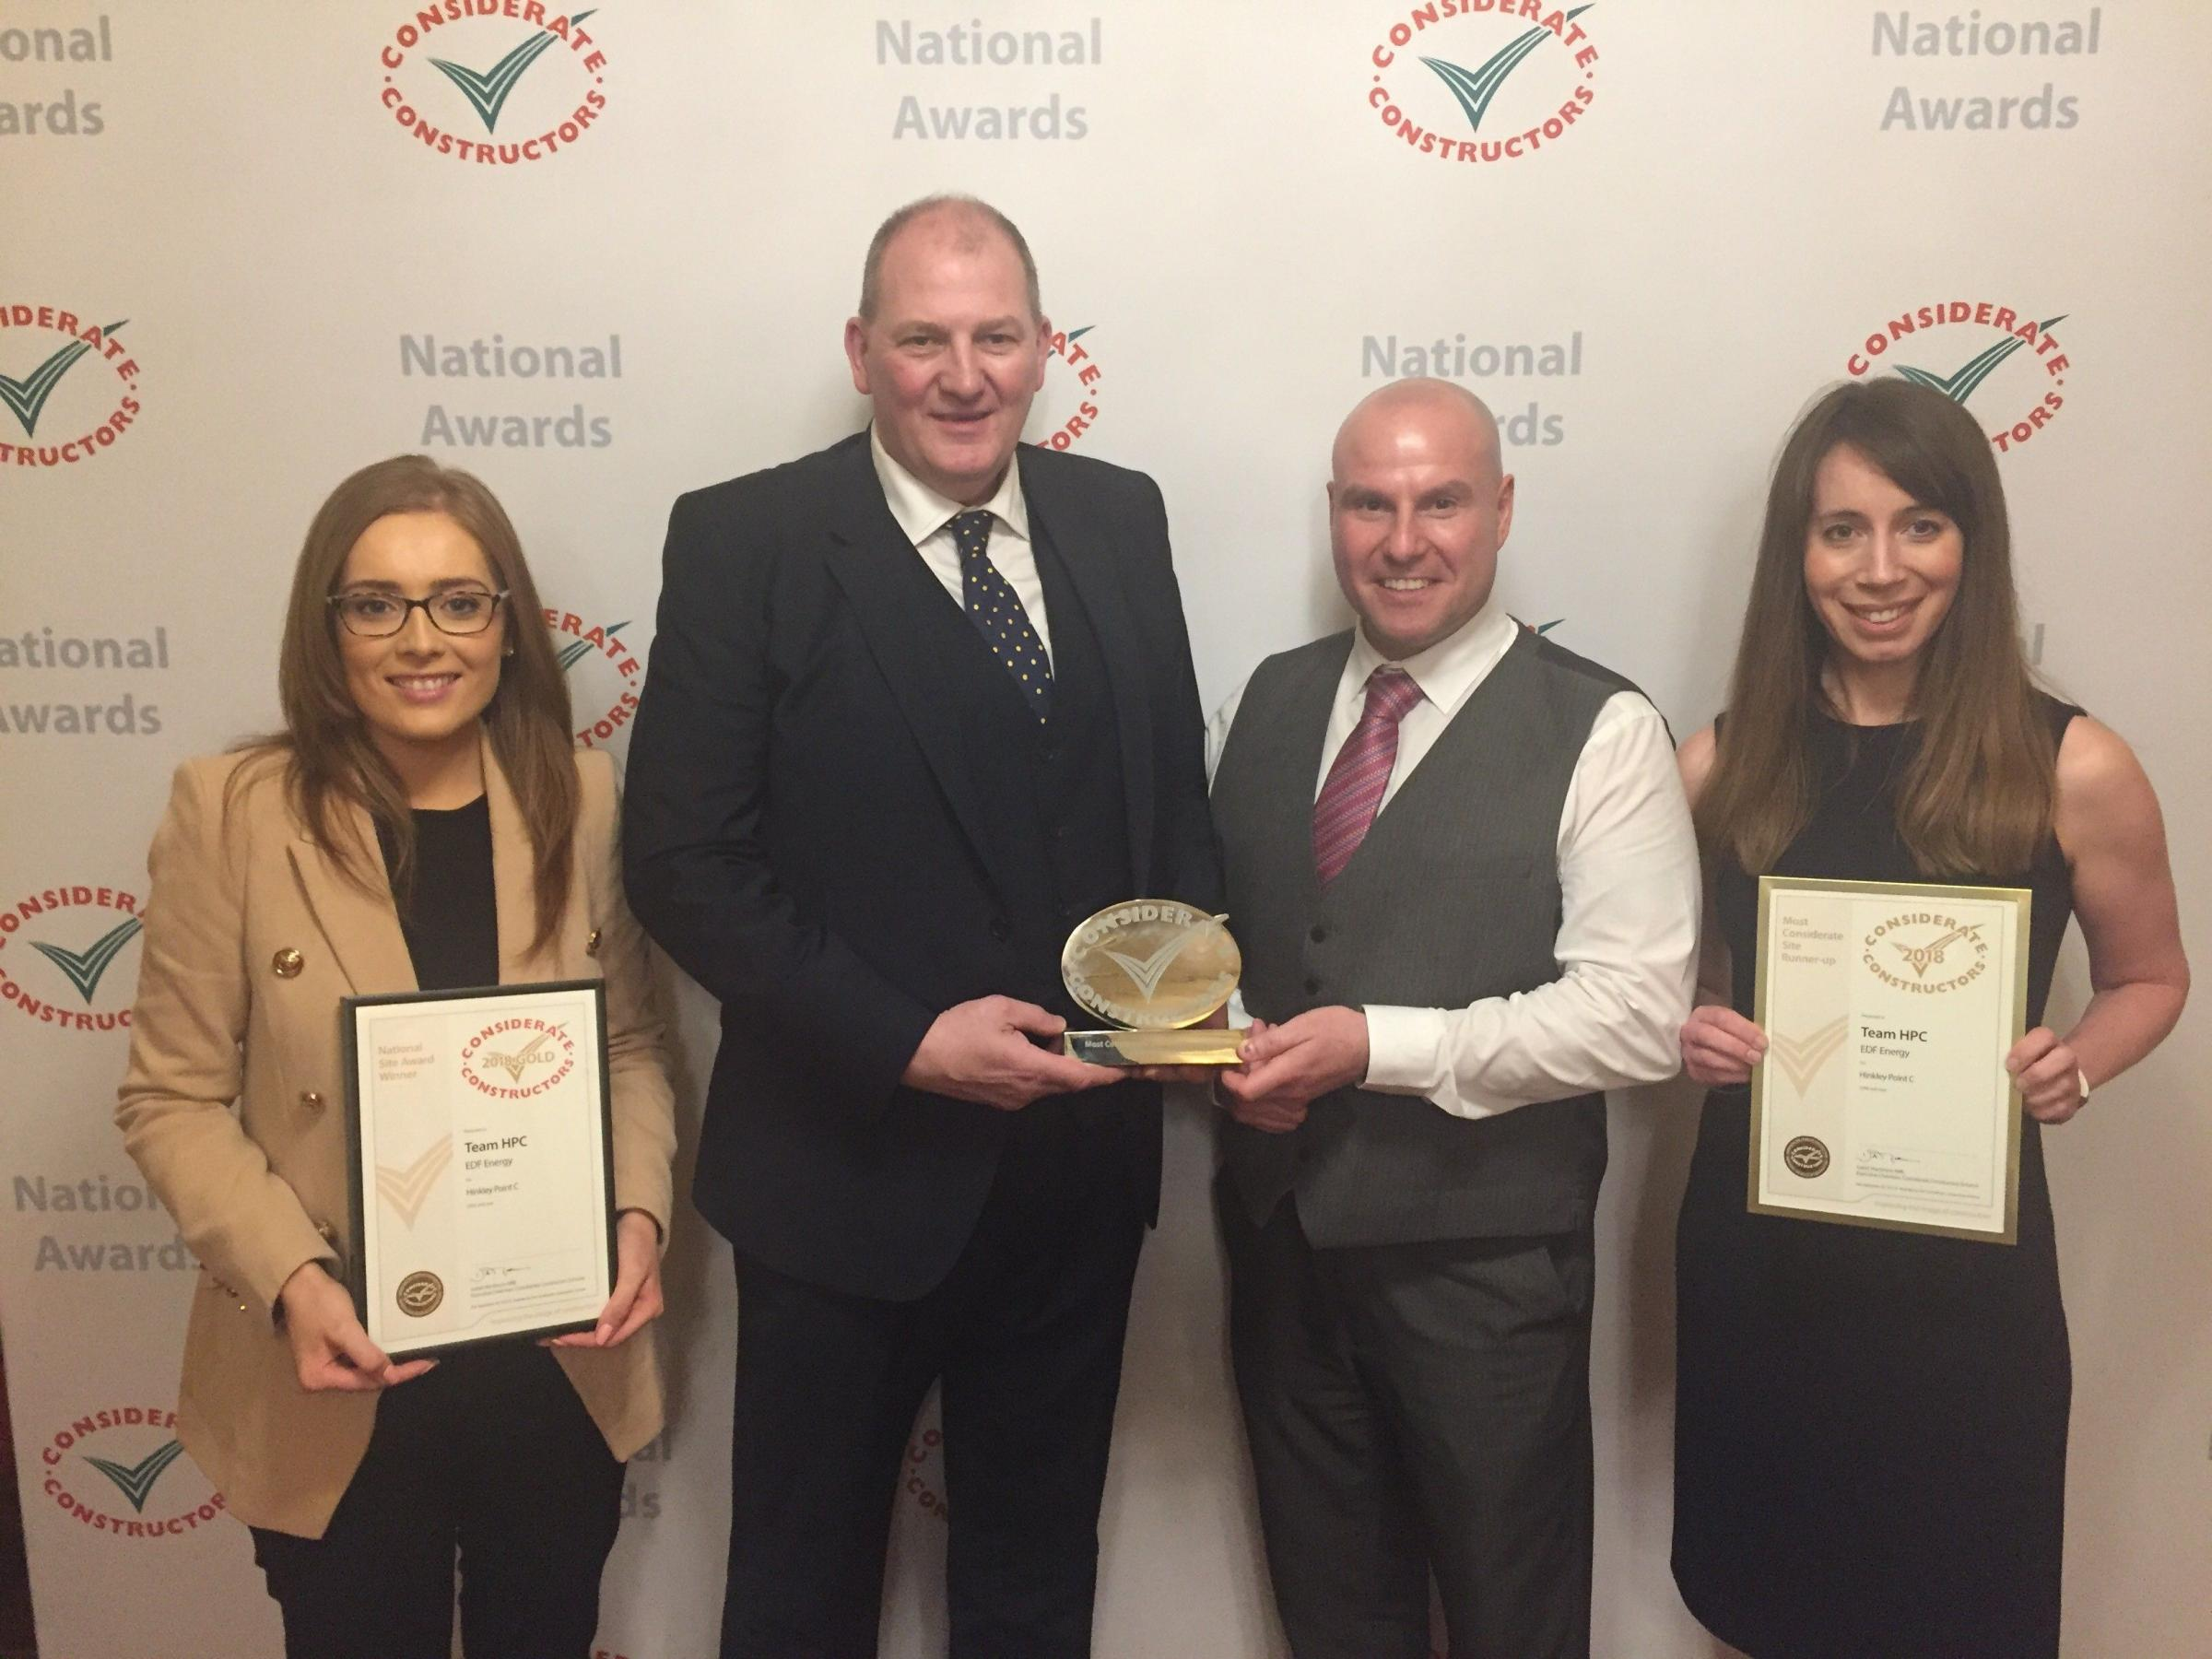 AWARD: Colleen Catterson (Bylor), Iain Graham, Lee Jones (both EDF Energy), and Emma Keen (Kier Bam) pictured with the award